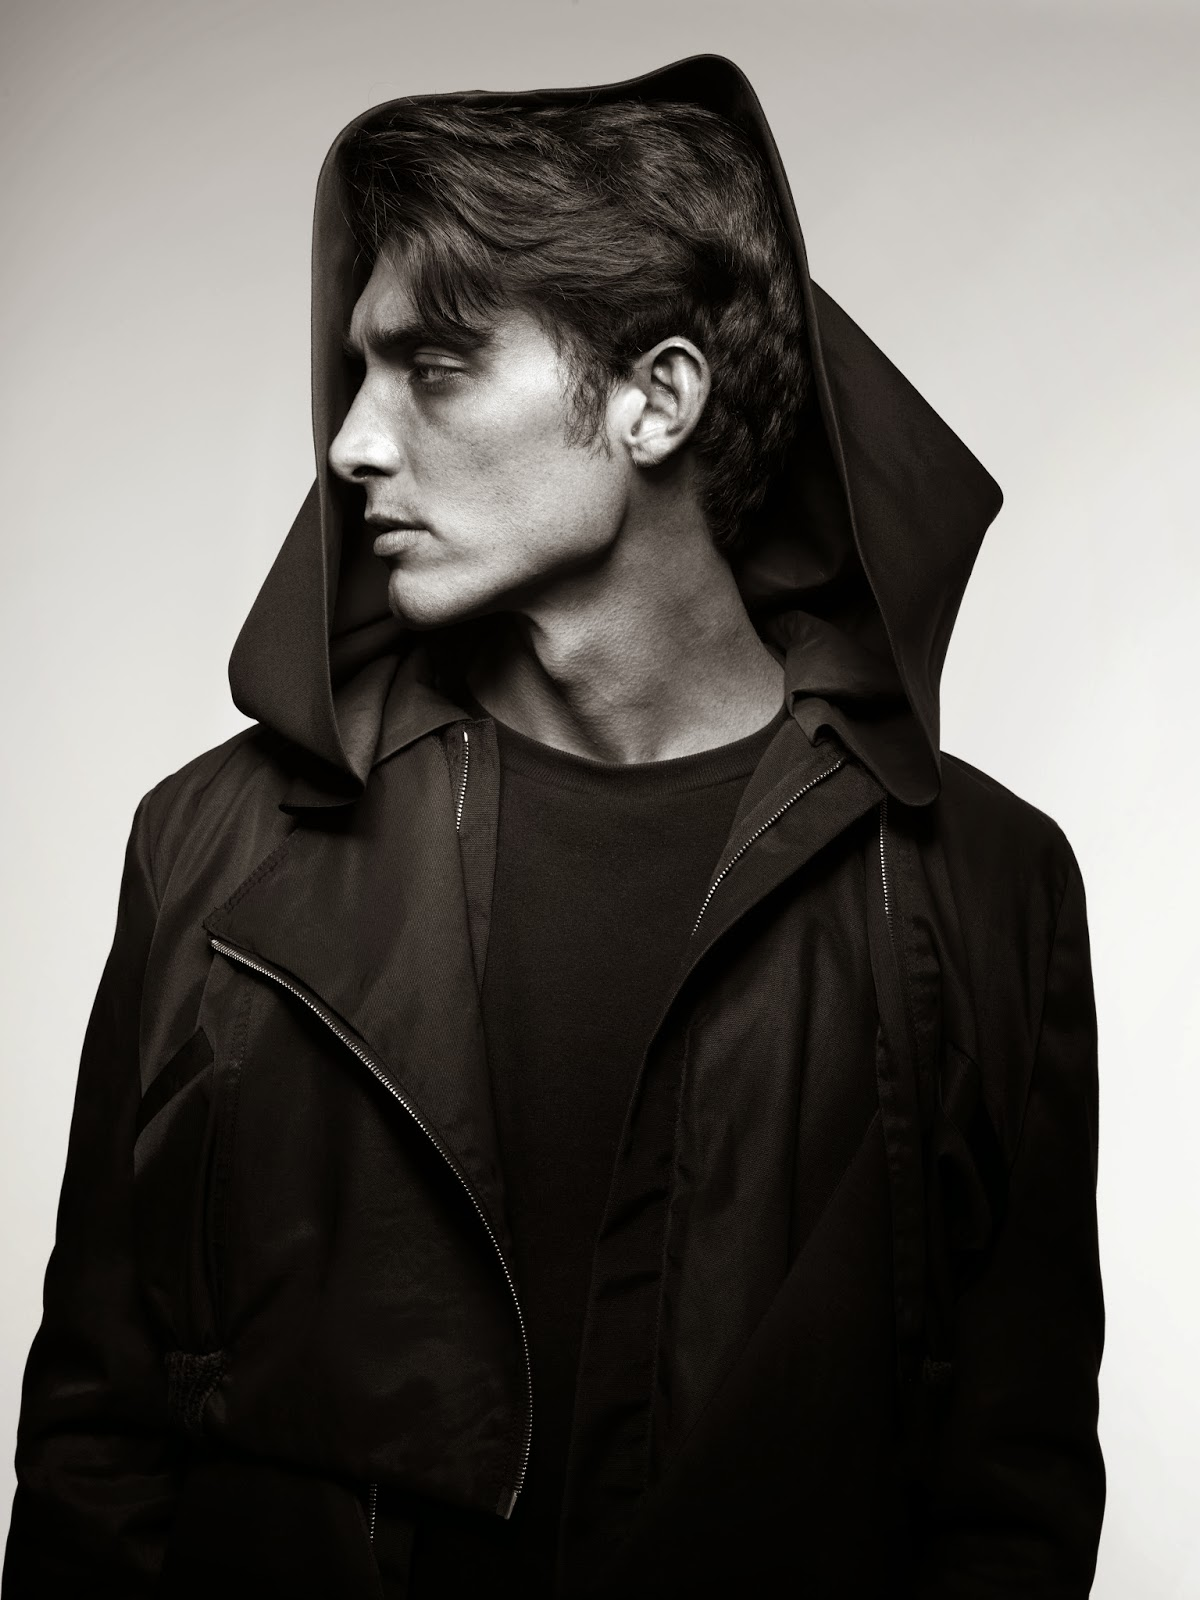 STEVEN K. (MAJOR MODEL MANAGEMENT) POR TREVOR MANSFIELD 2 STEVEN K. (MAJOR MODEL MANAGEMENT) POR TREVOR MANSFIELD